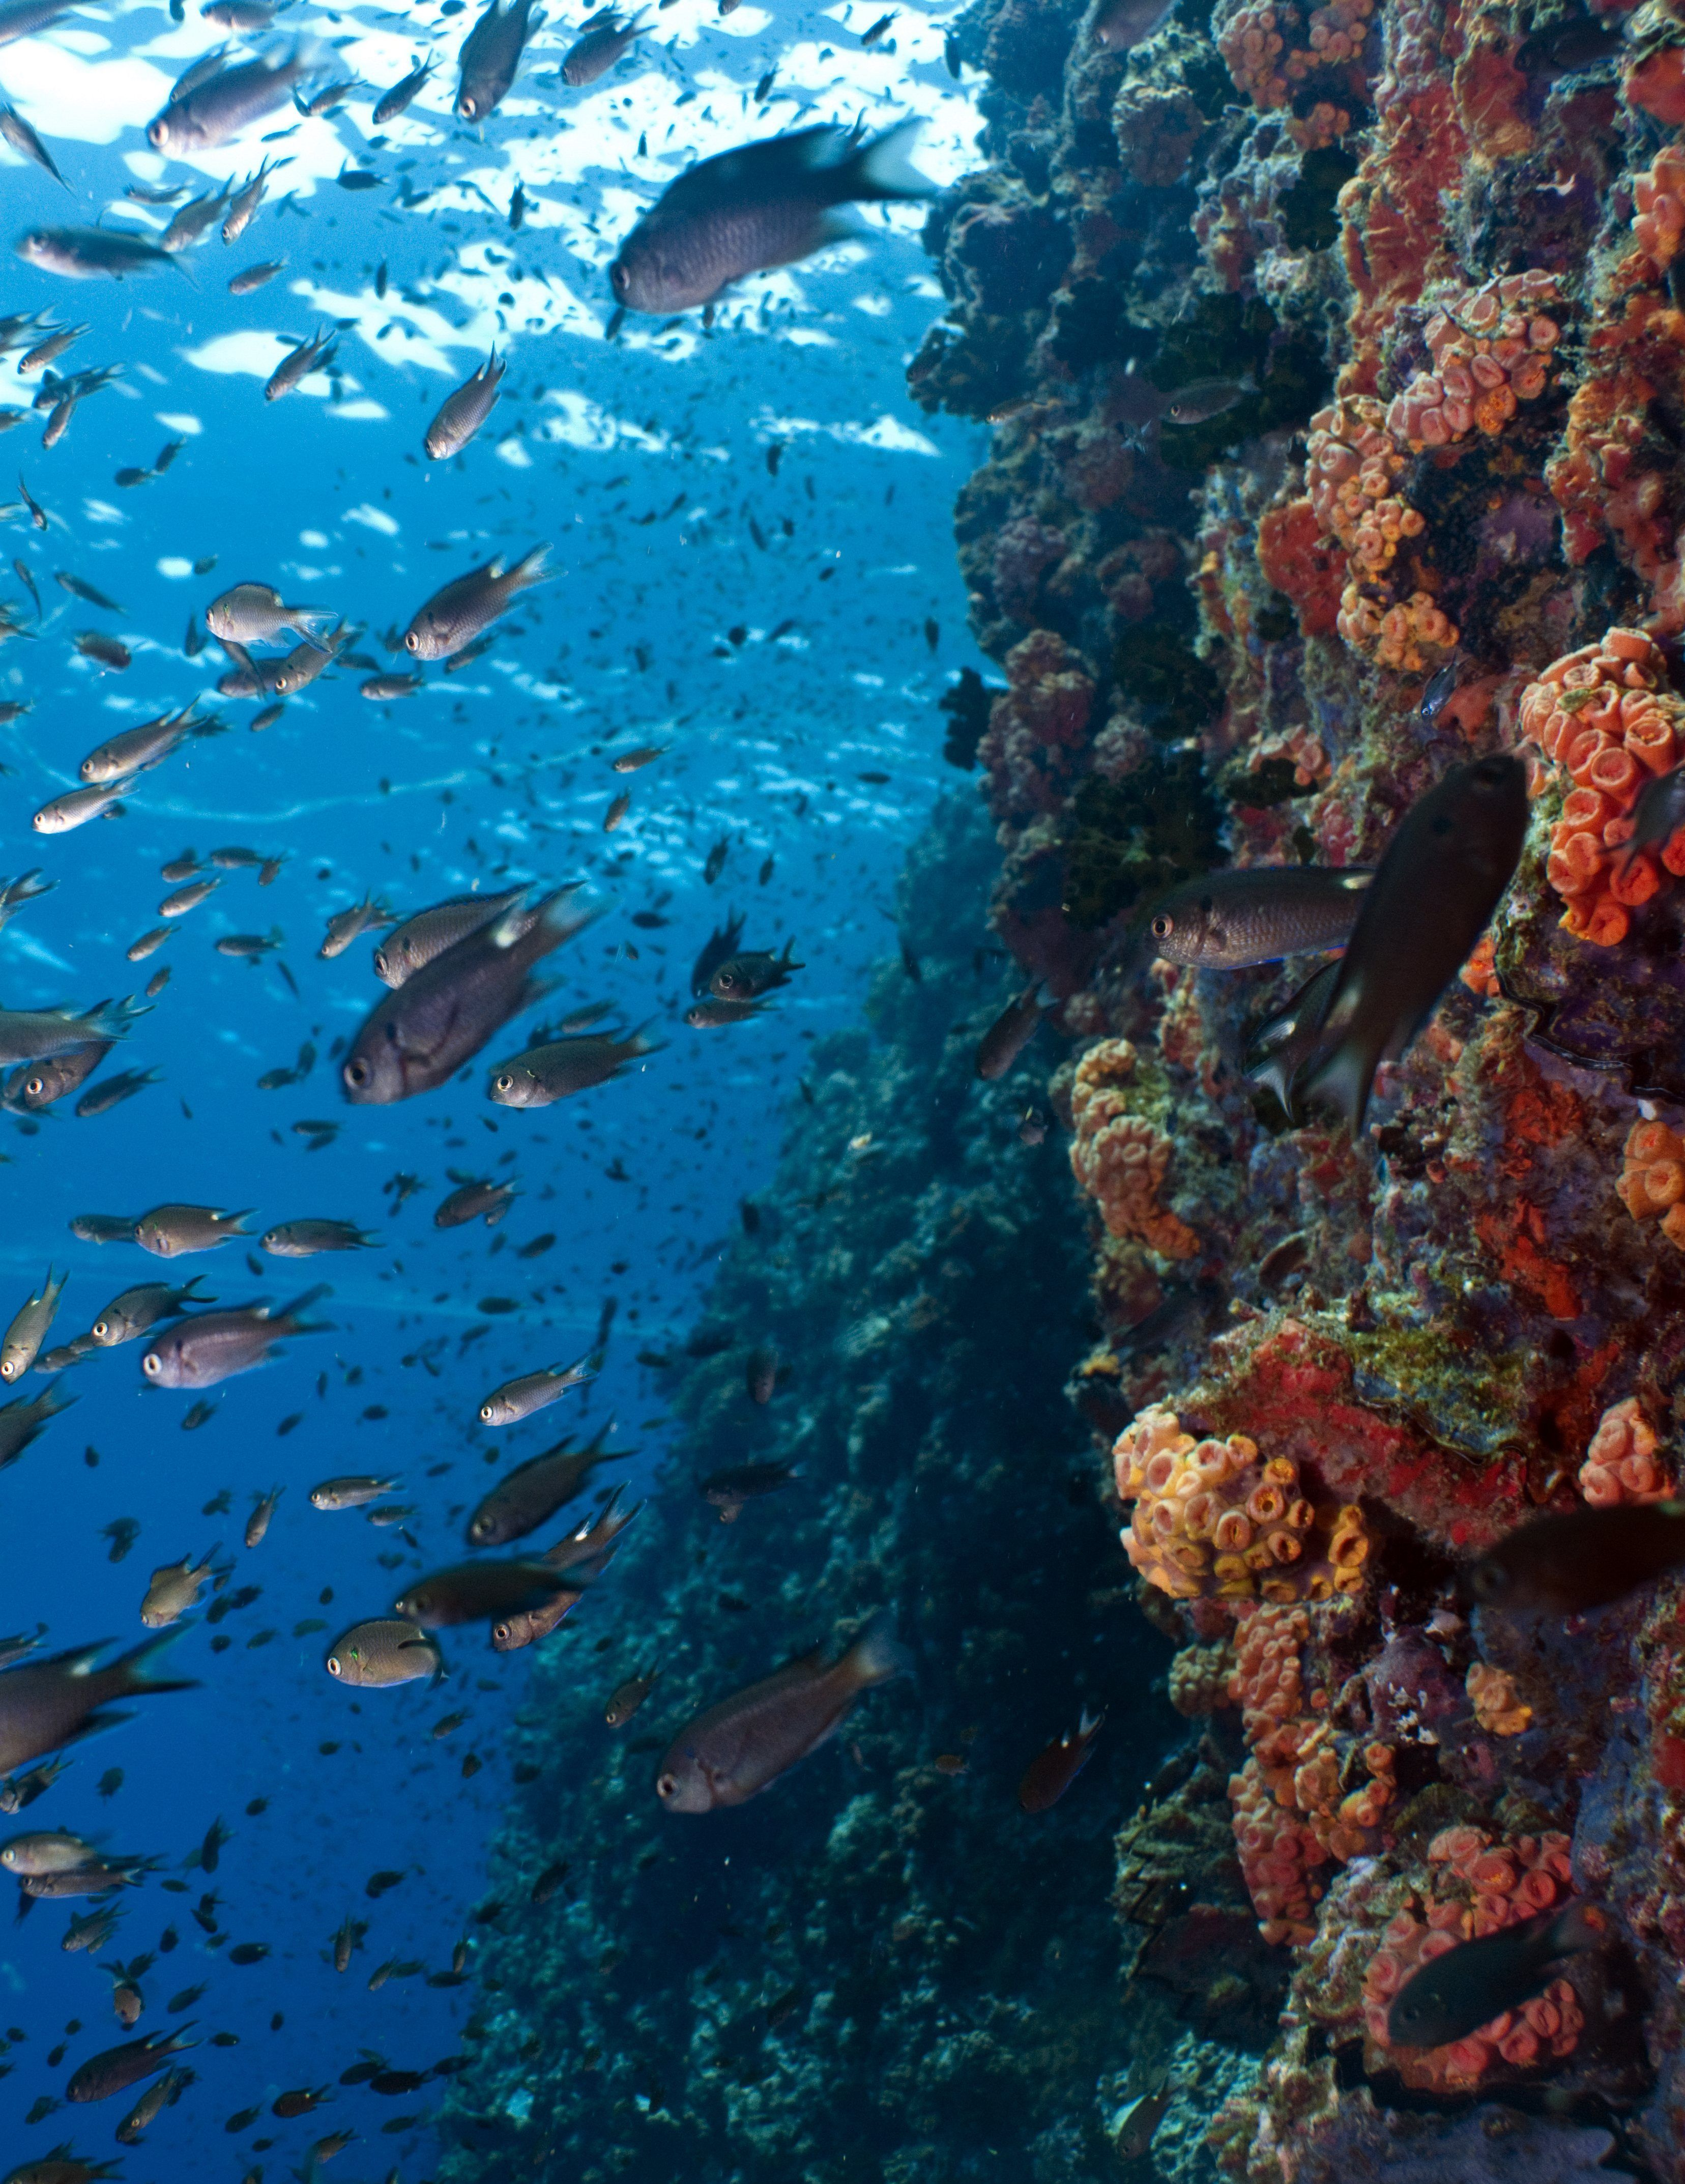 Fish aquarium in surat timings - Join Our Project And Enjoy Daily Dives To Visit The Coral Reefs Here You Are Plunged Into A Different World With Magnificent Examples Of The Diffe